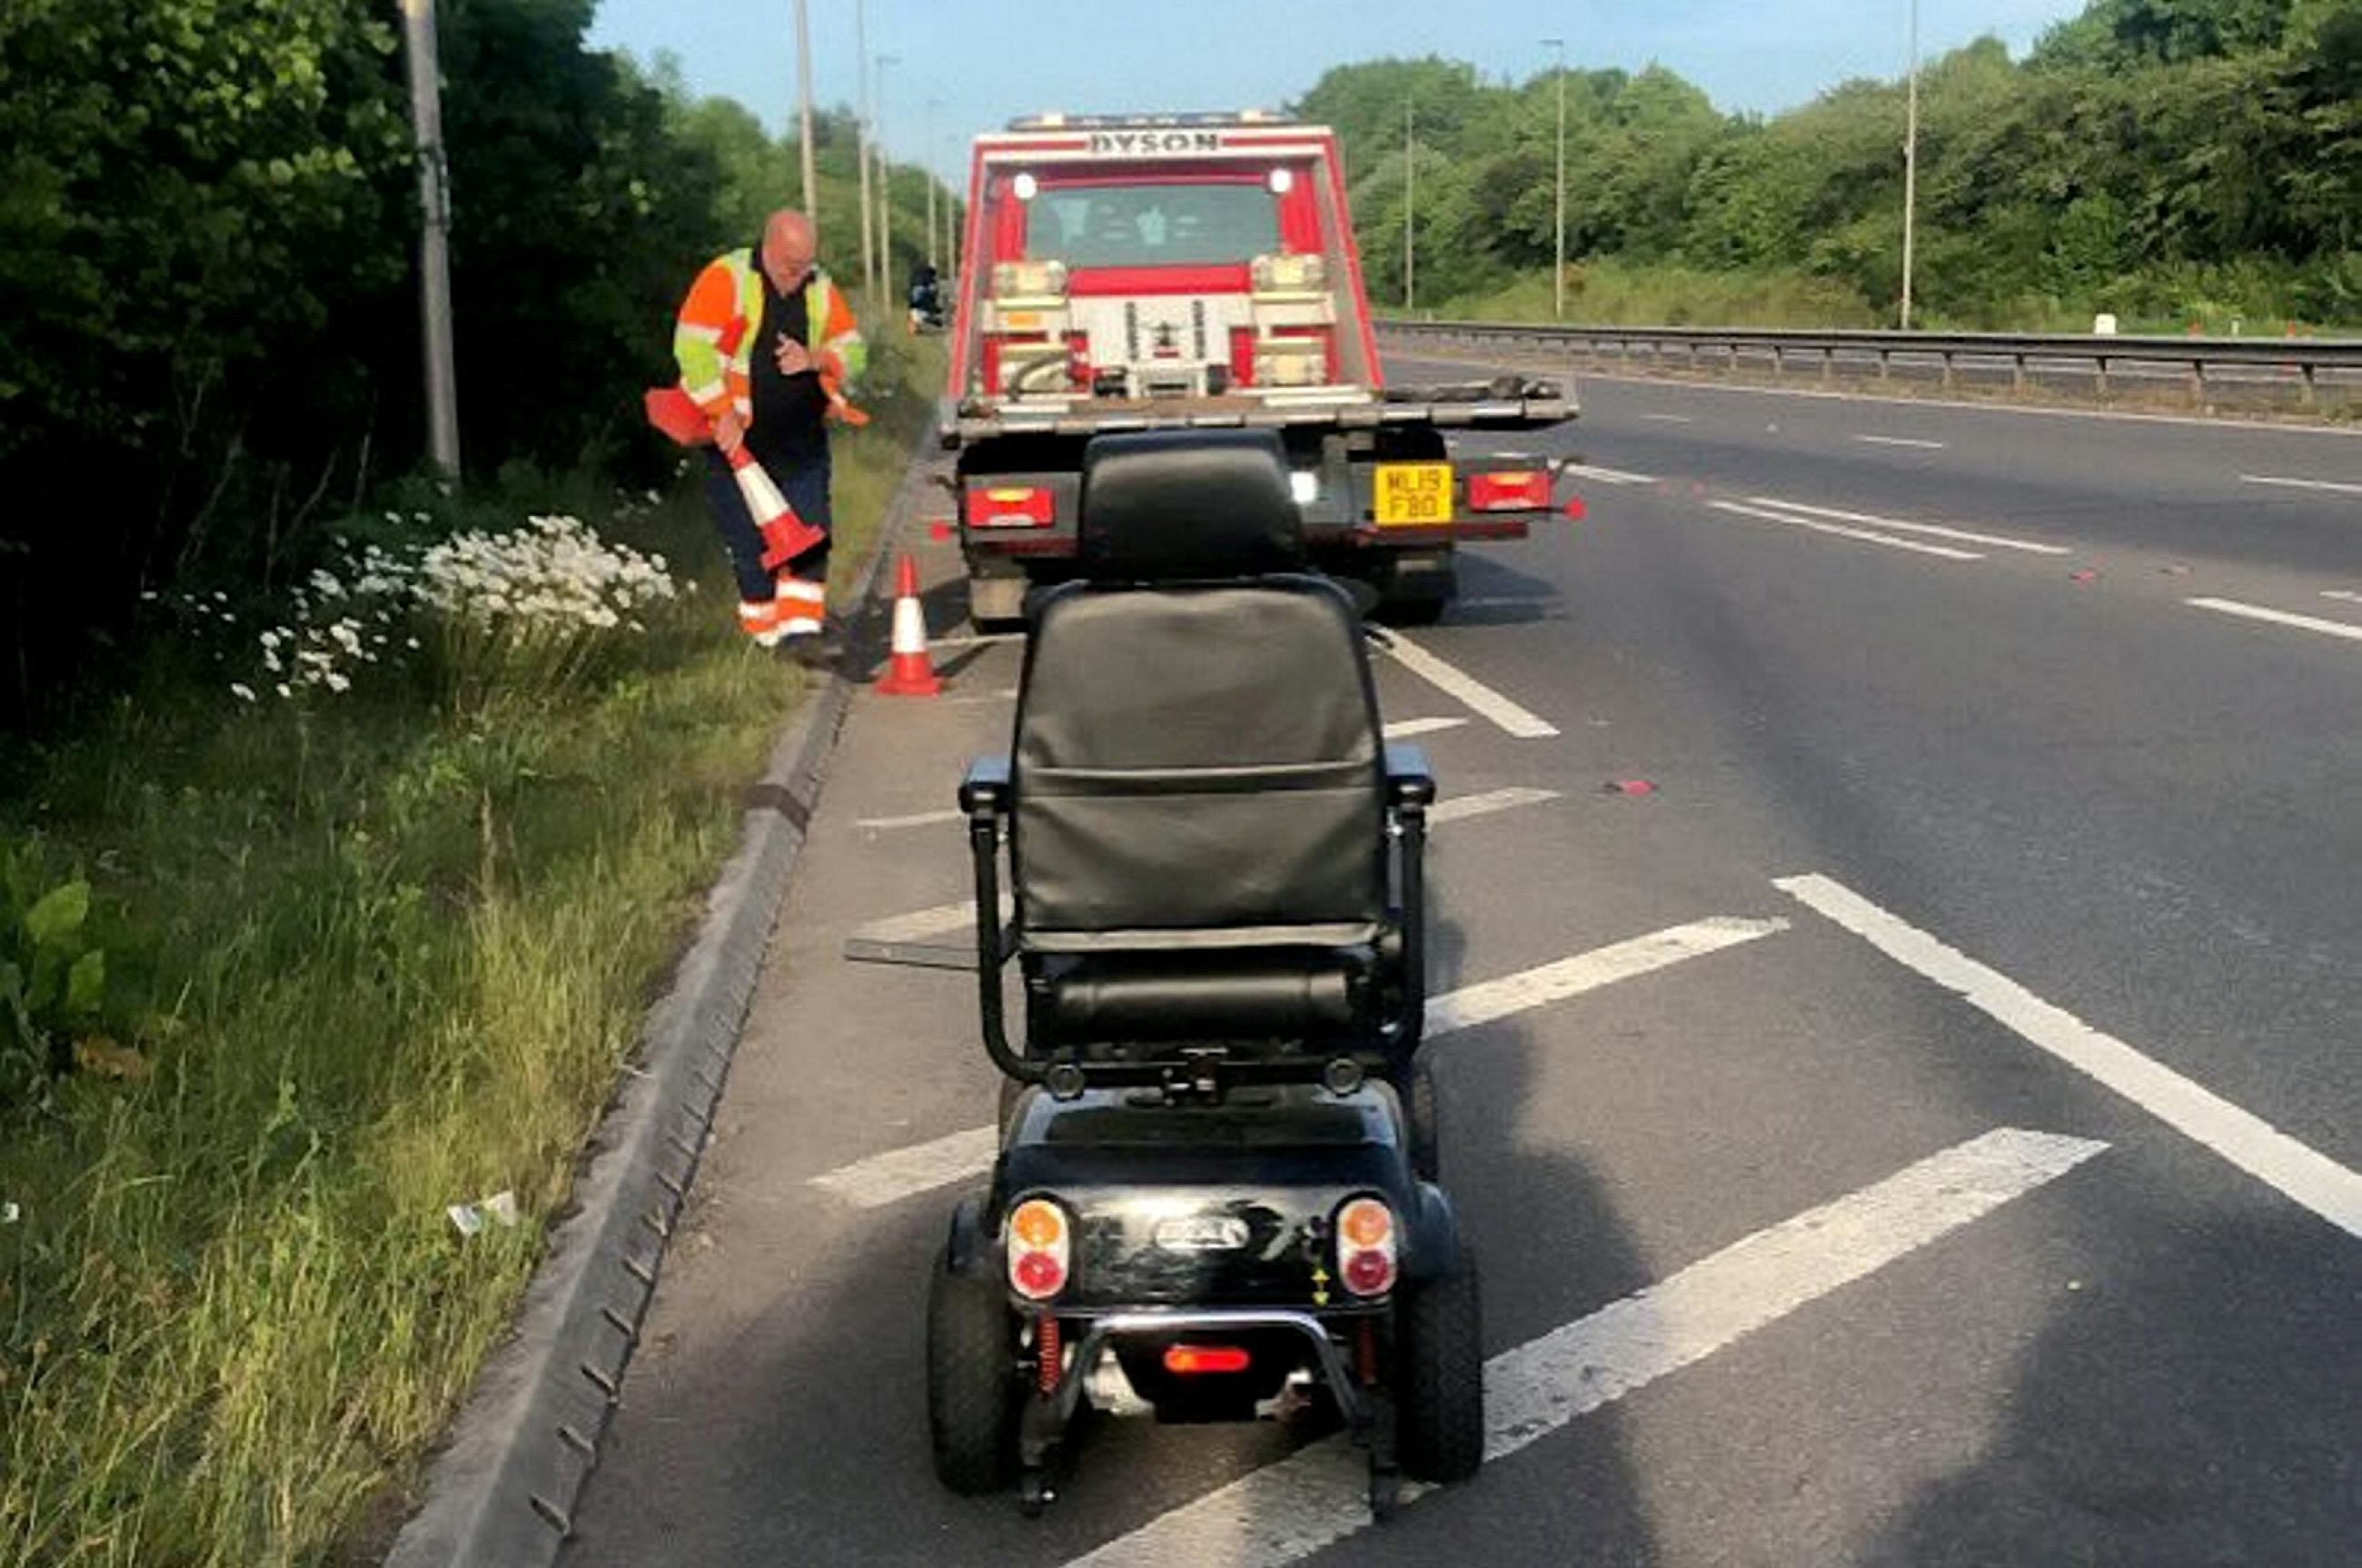 A mobility scooter was spotted being driven on a dual carriageway between Shrewsbury and Telford (Picture: SWNS)